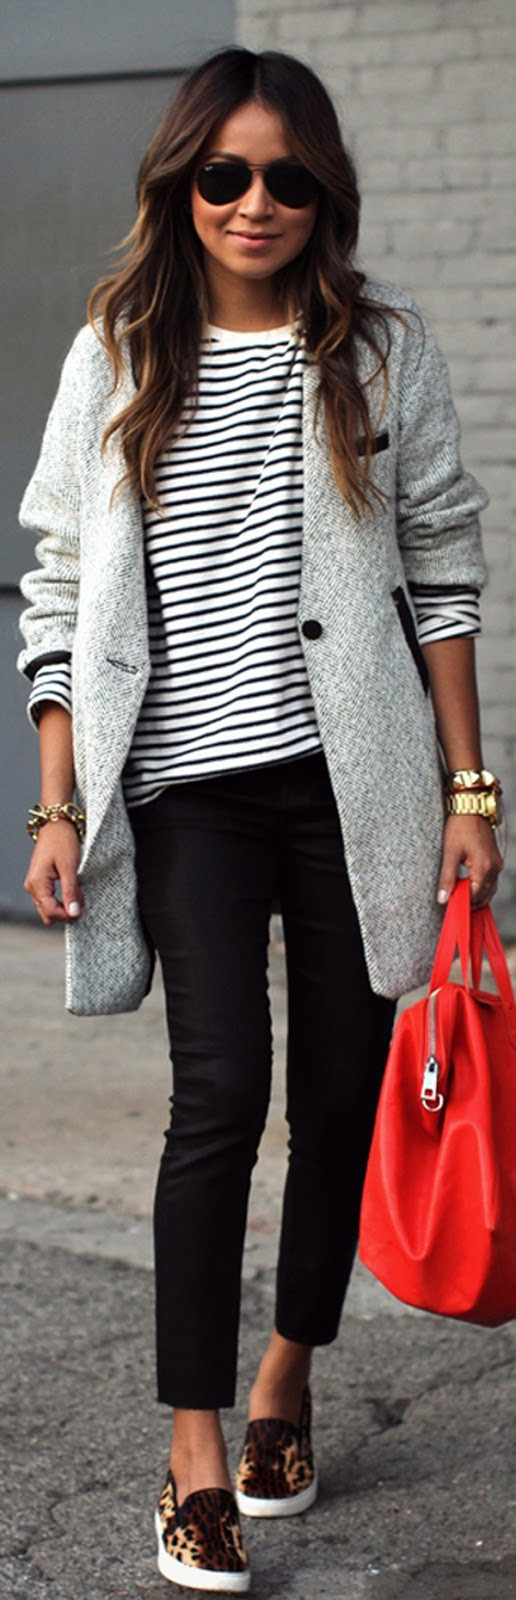 sneakers cute style